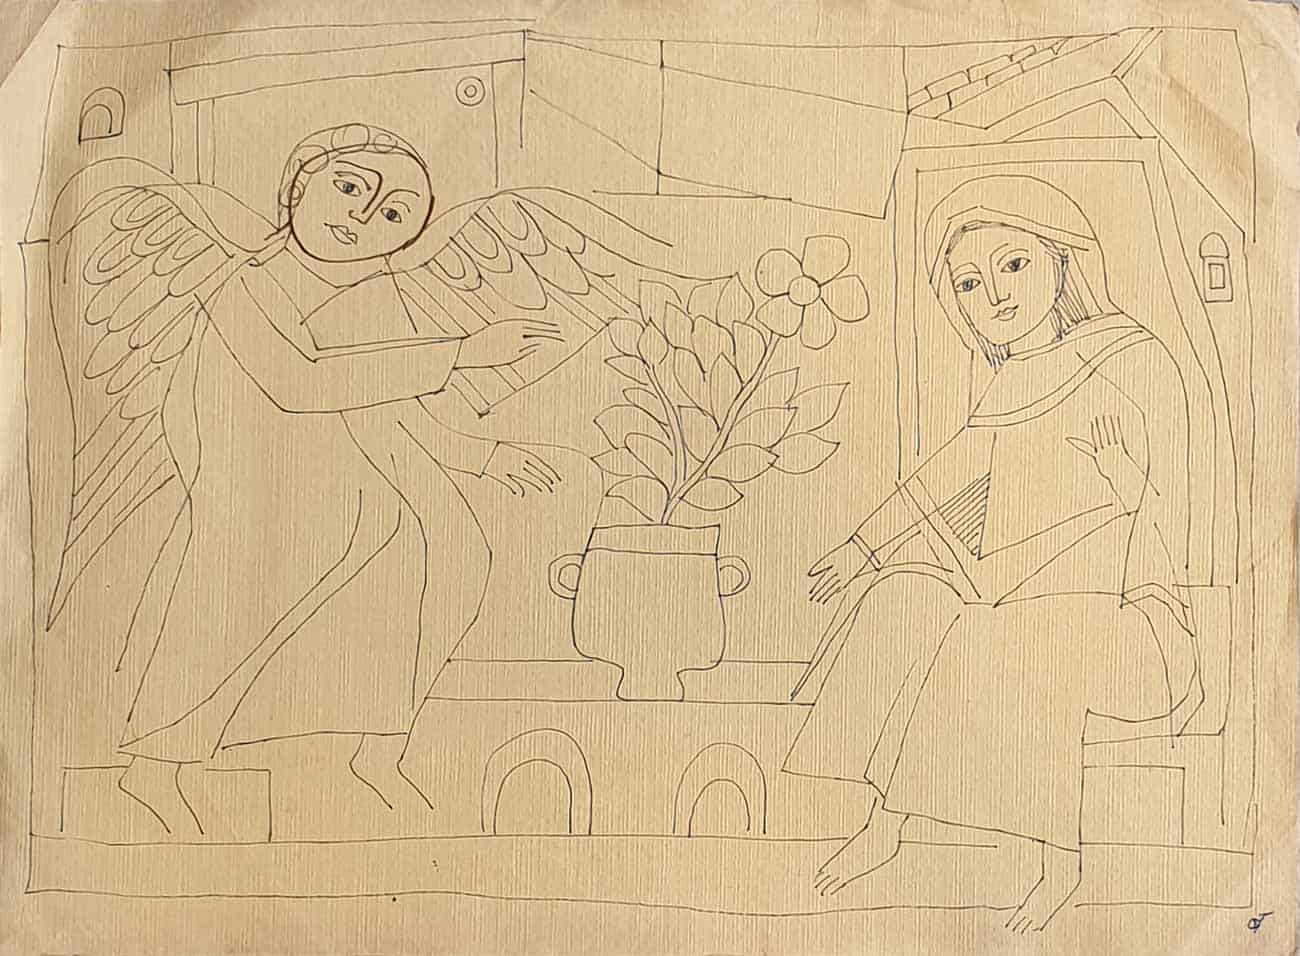 angel-with-women-drawing-on-paper-15×11-inches